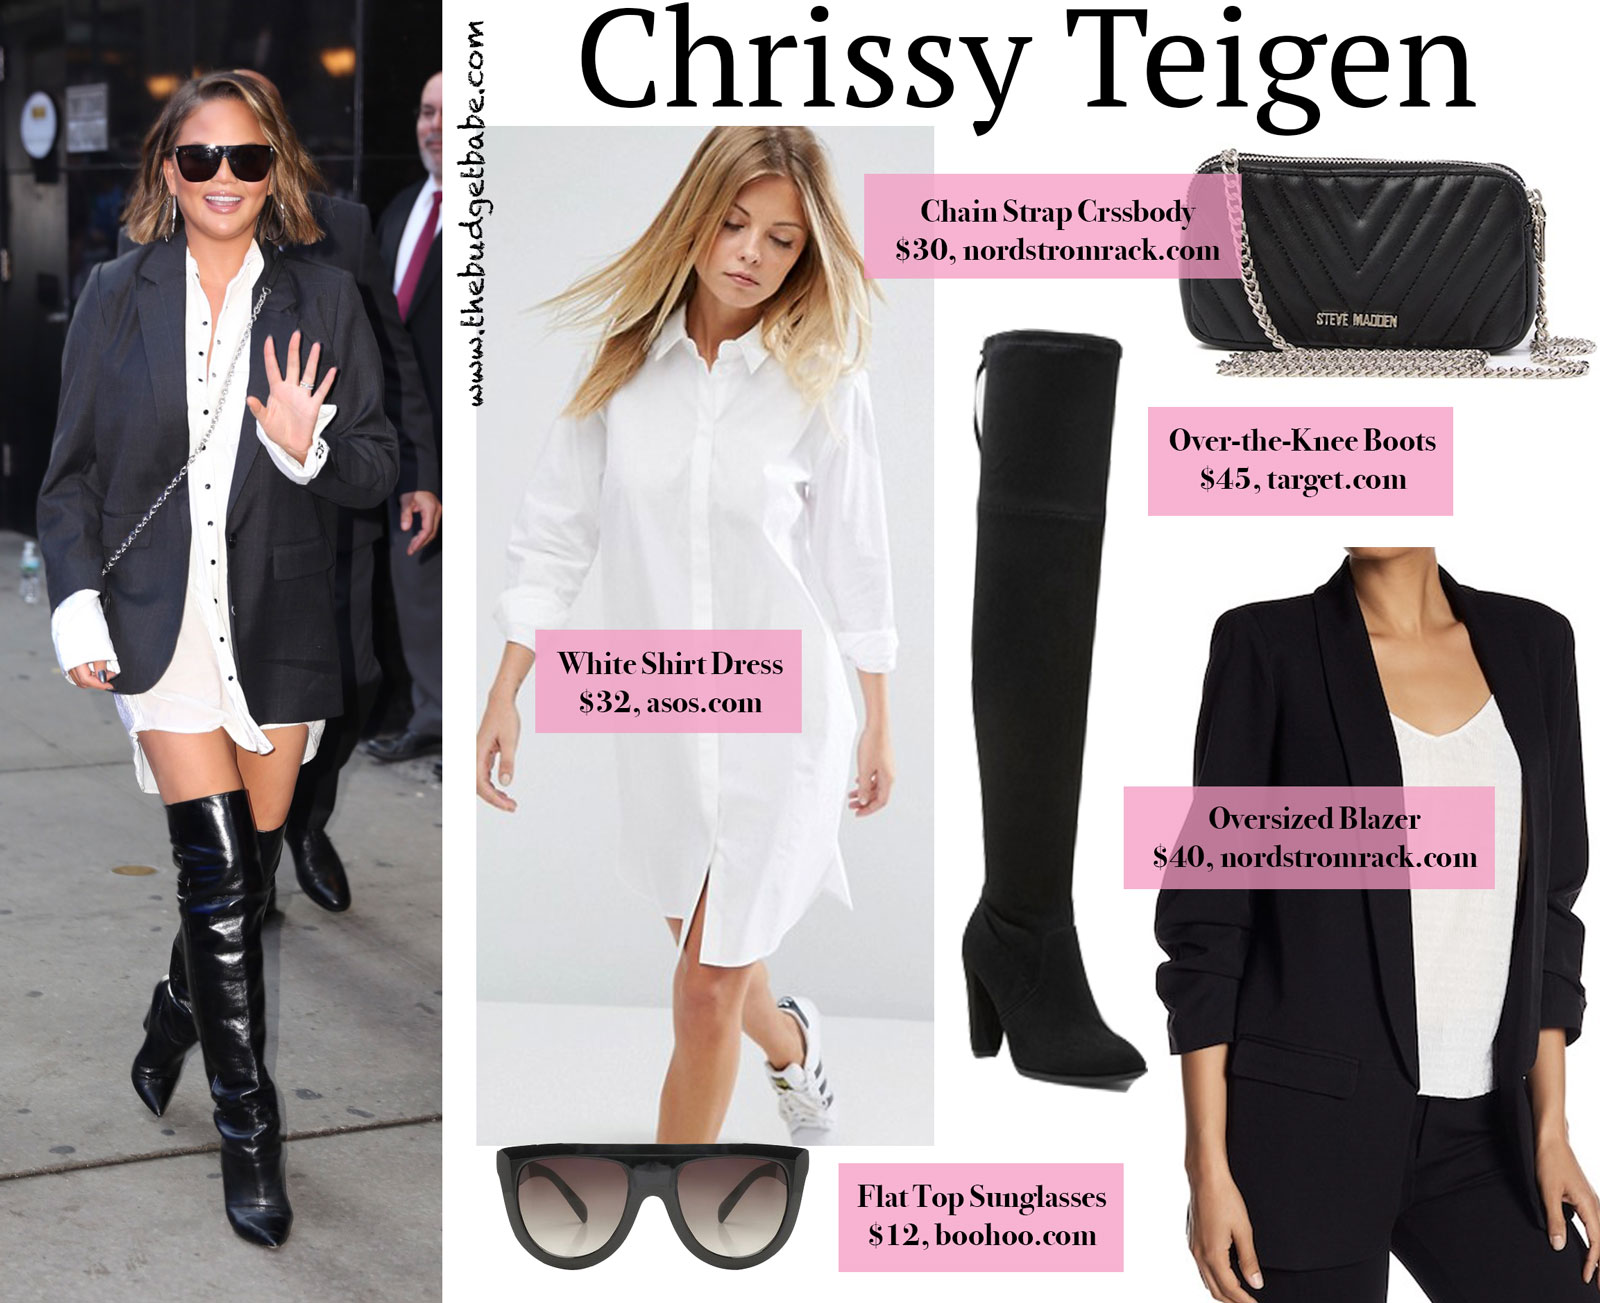 e4d1b59c478 Look for Less  Chrissy Teigen in a White Shirt Dress